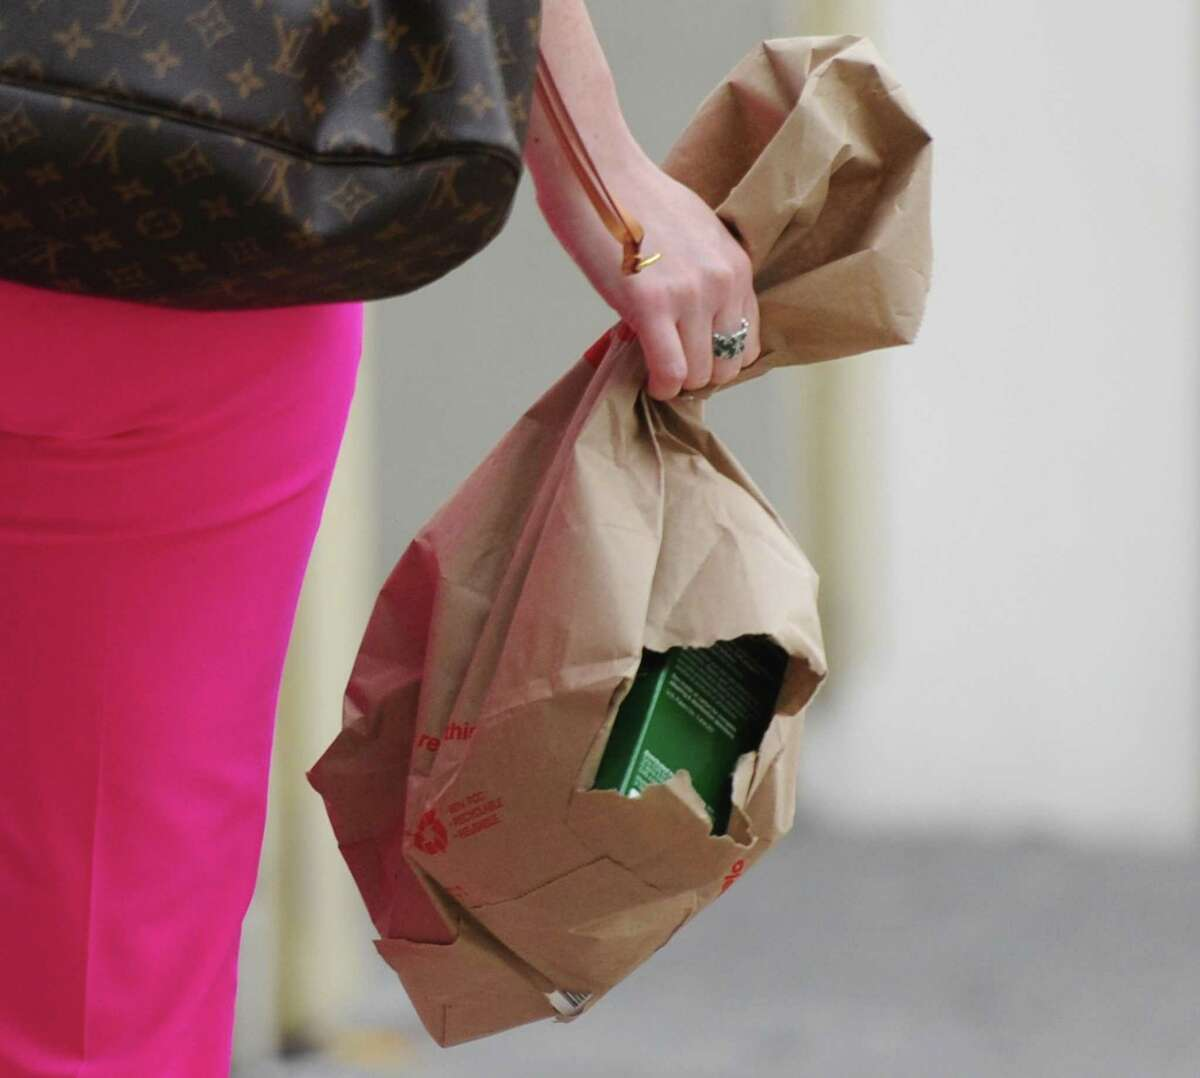 A woman carries items in a paper bag with a hole in it down Greenwich Avenue on Wednesday.